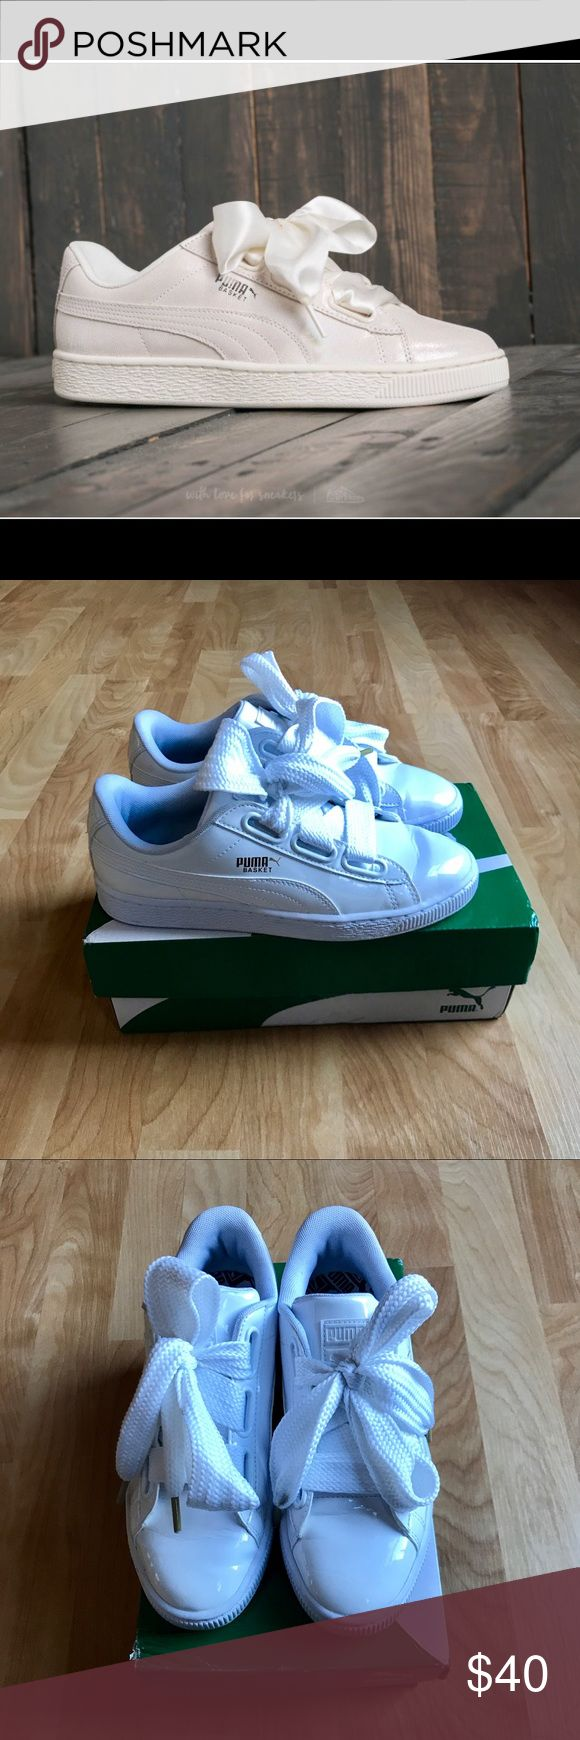 Puma basket sneakers Women's white Puma basket sneakers size 6.5W. They are in excellent condition (I wore them only 2-3 times at most). There is a little scuff on the tongue of the right sneaker (visible in pictures). If you have any questions please let me know😊❤️ Puma Shoes Sneakers